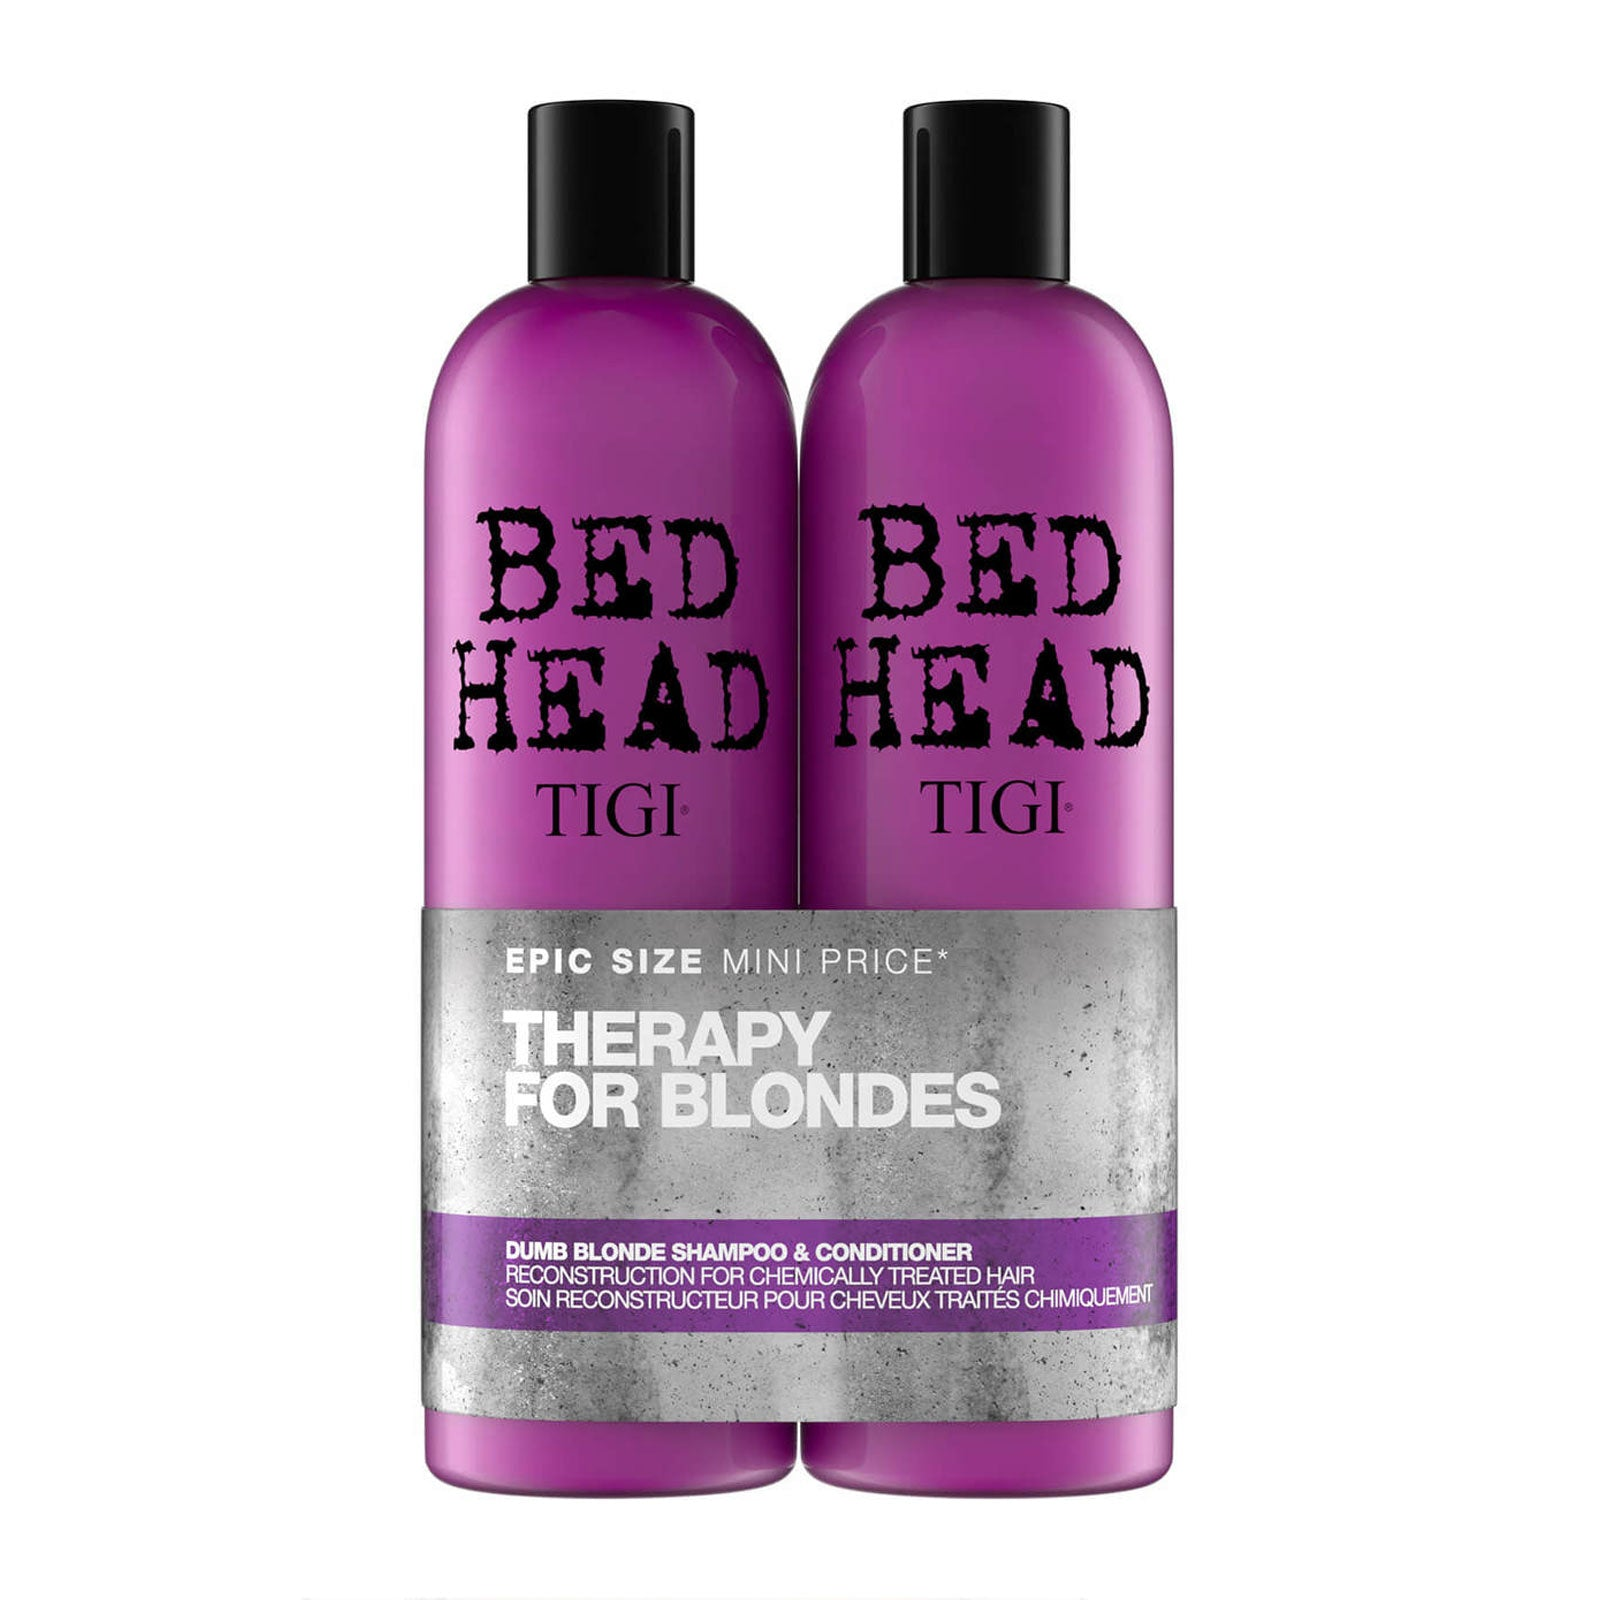 Bed Head by TIGI Dumb Blonde Shampoo & Reconstructor Tween Duo 2 x 750ml